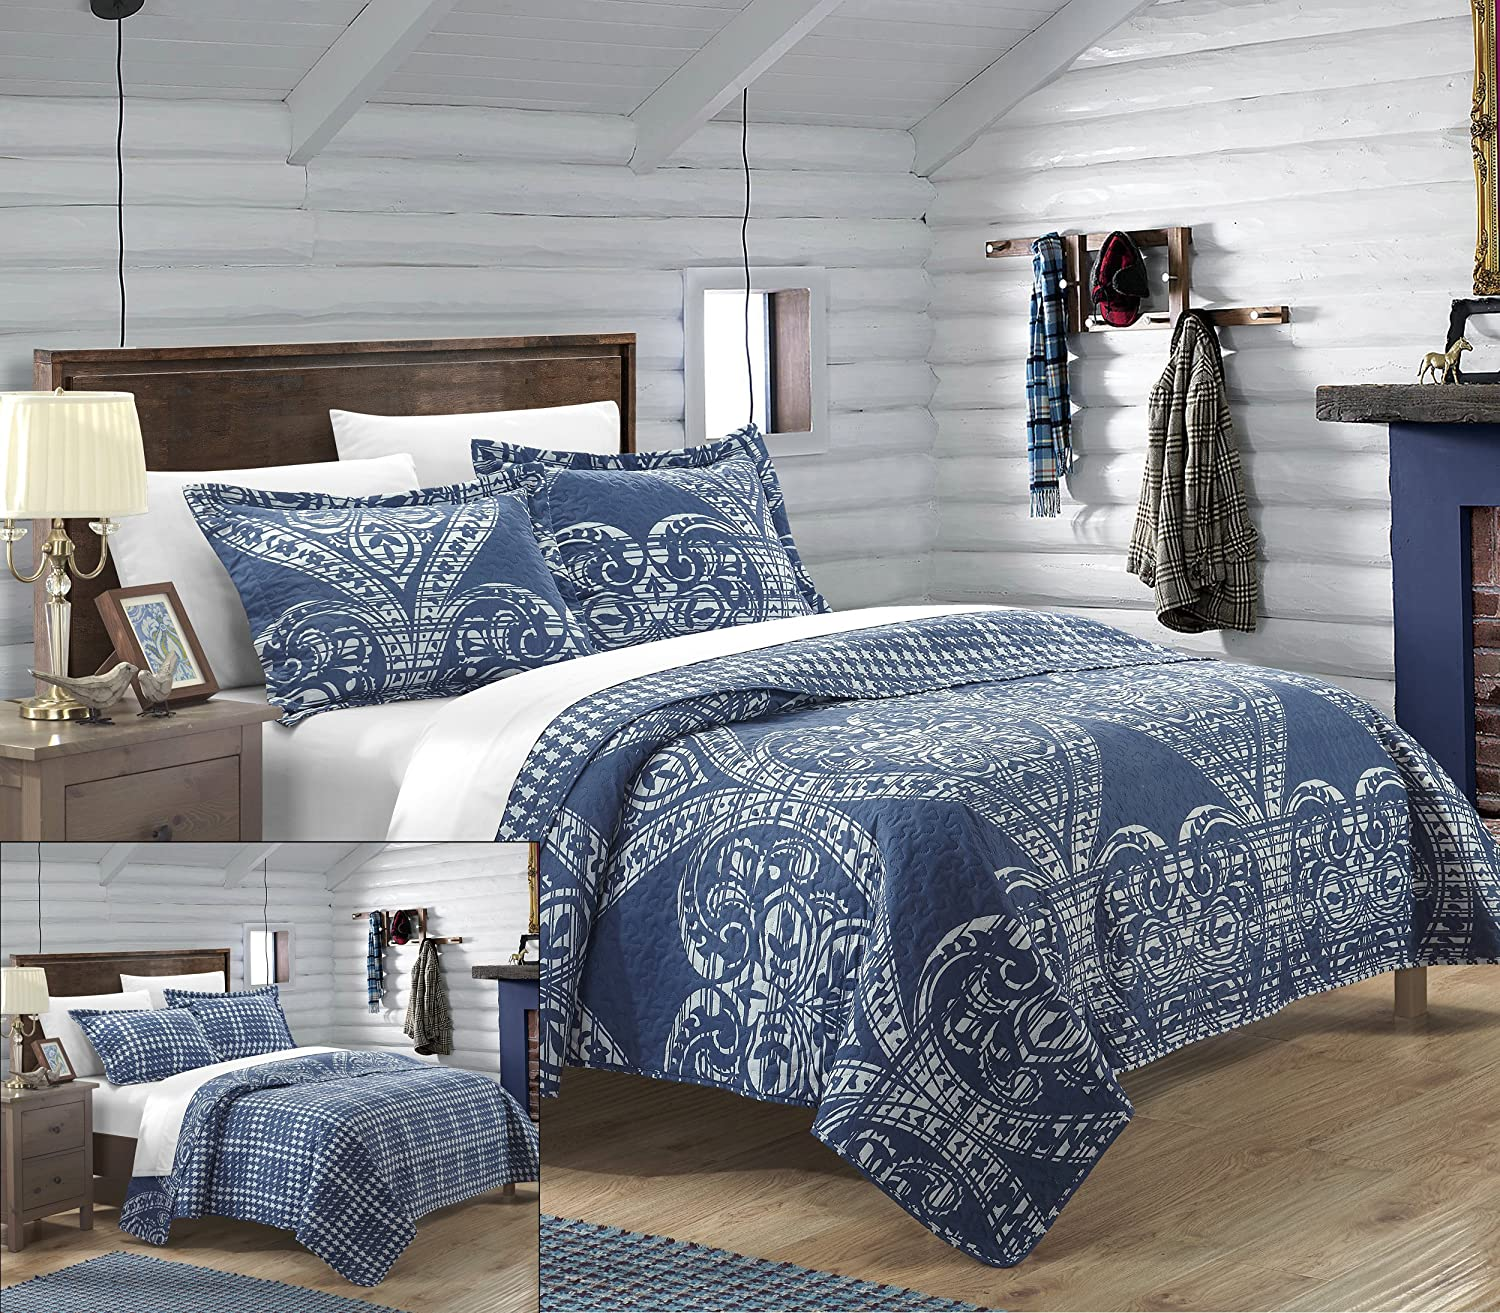 Napoli Reversible Printed Quilt Set, Queen, Navy